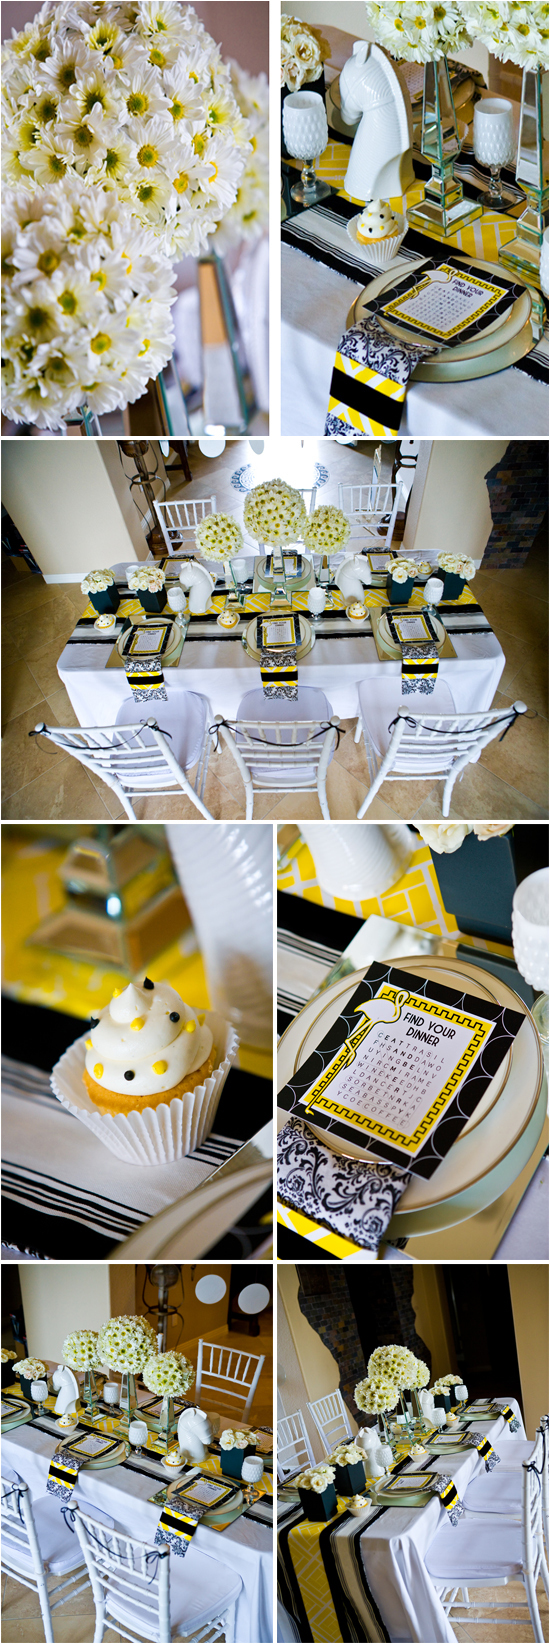 Do-It-Yourself Decor: Palm Springs Deco - Project Wedding ...